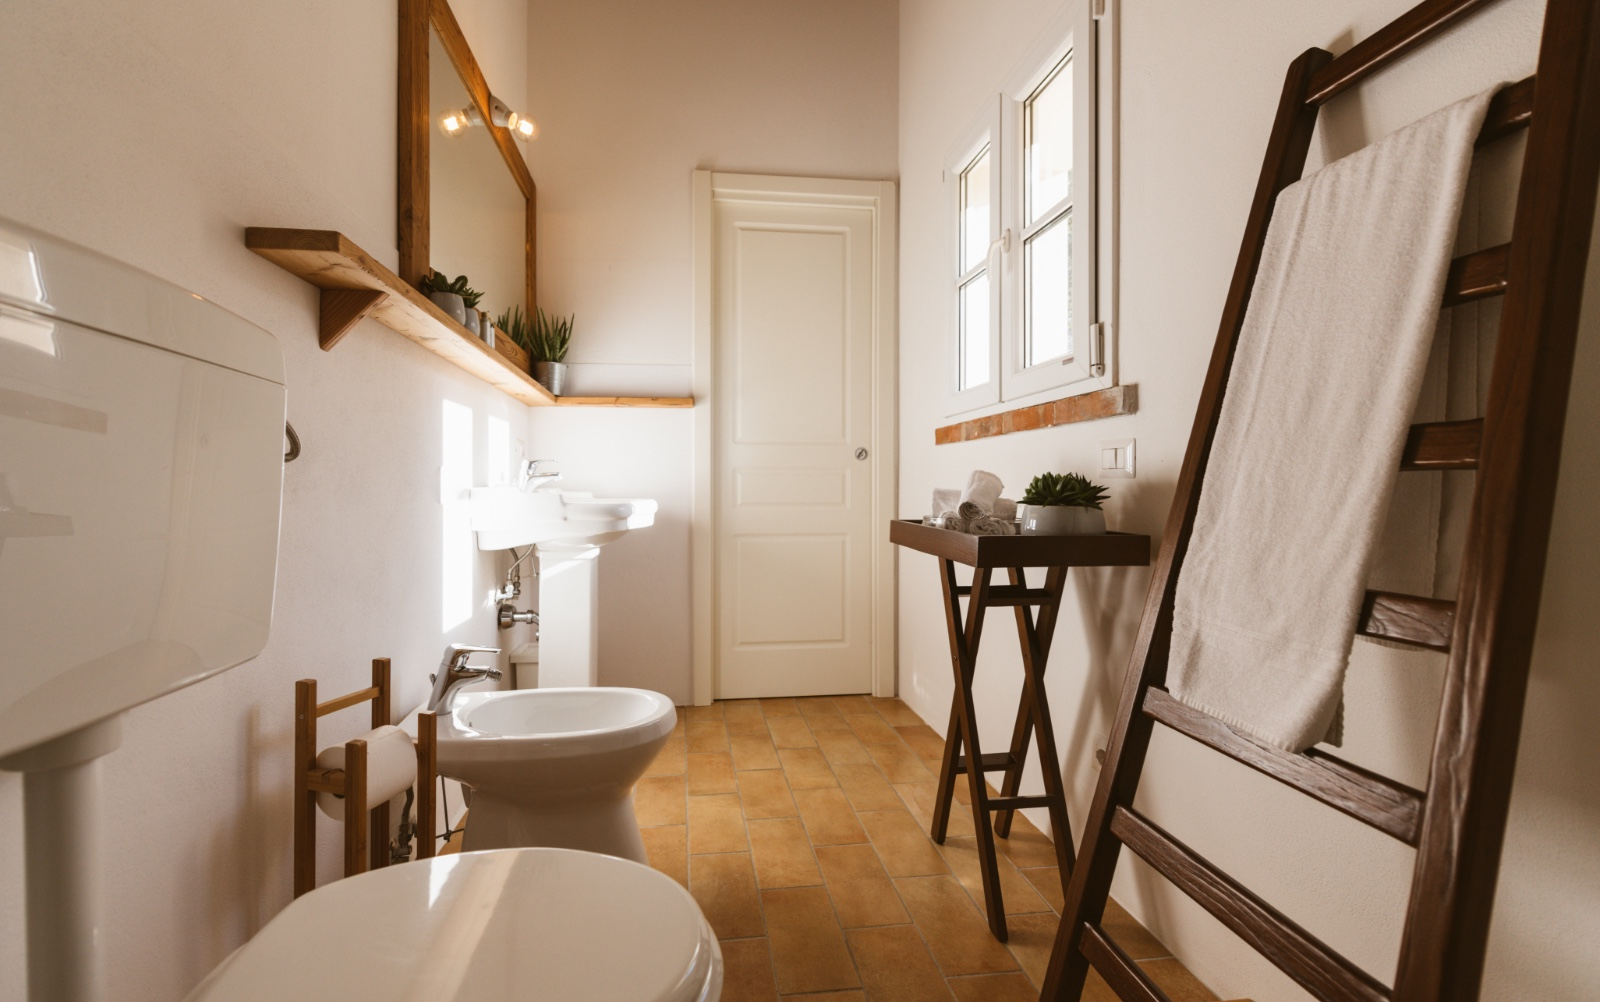 Borgo Le Colline, apartment bathroom